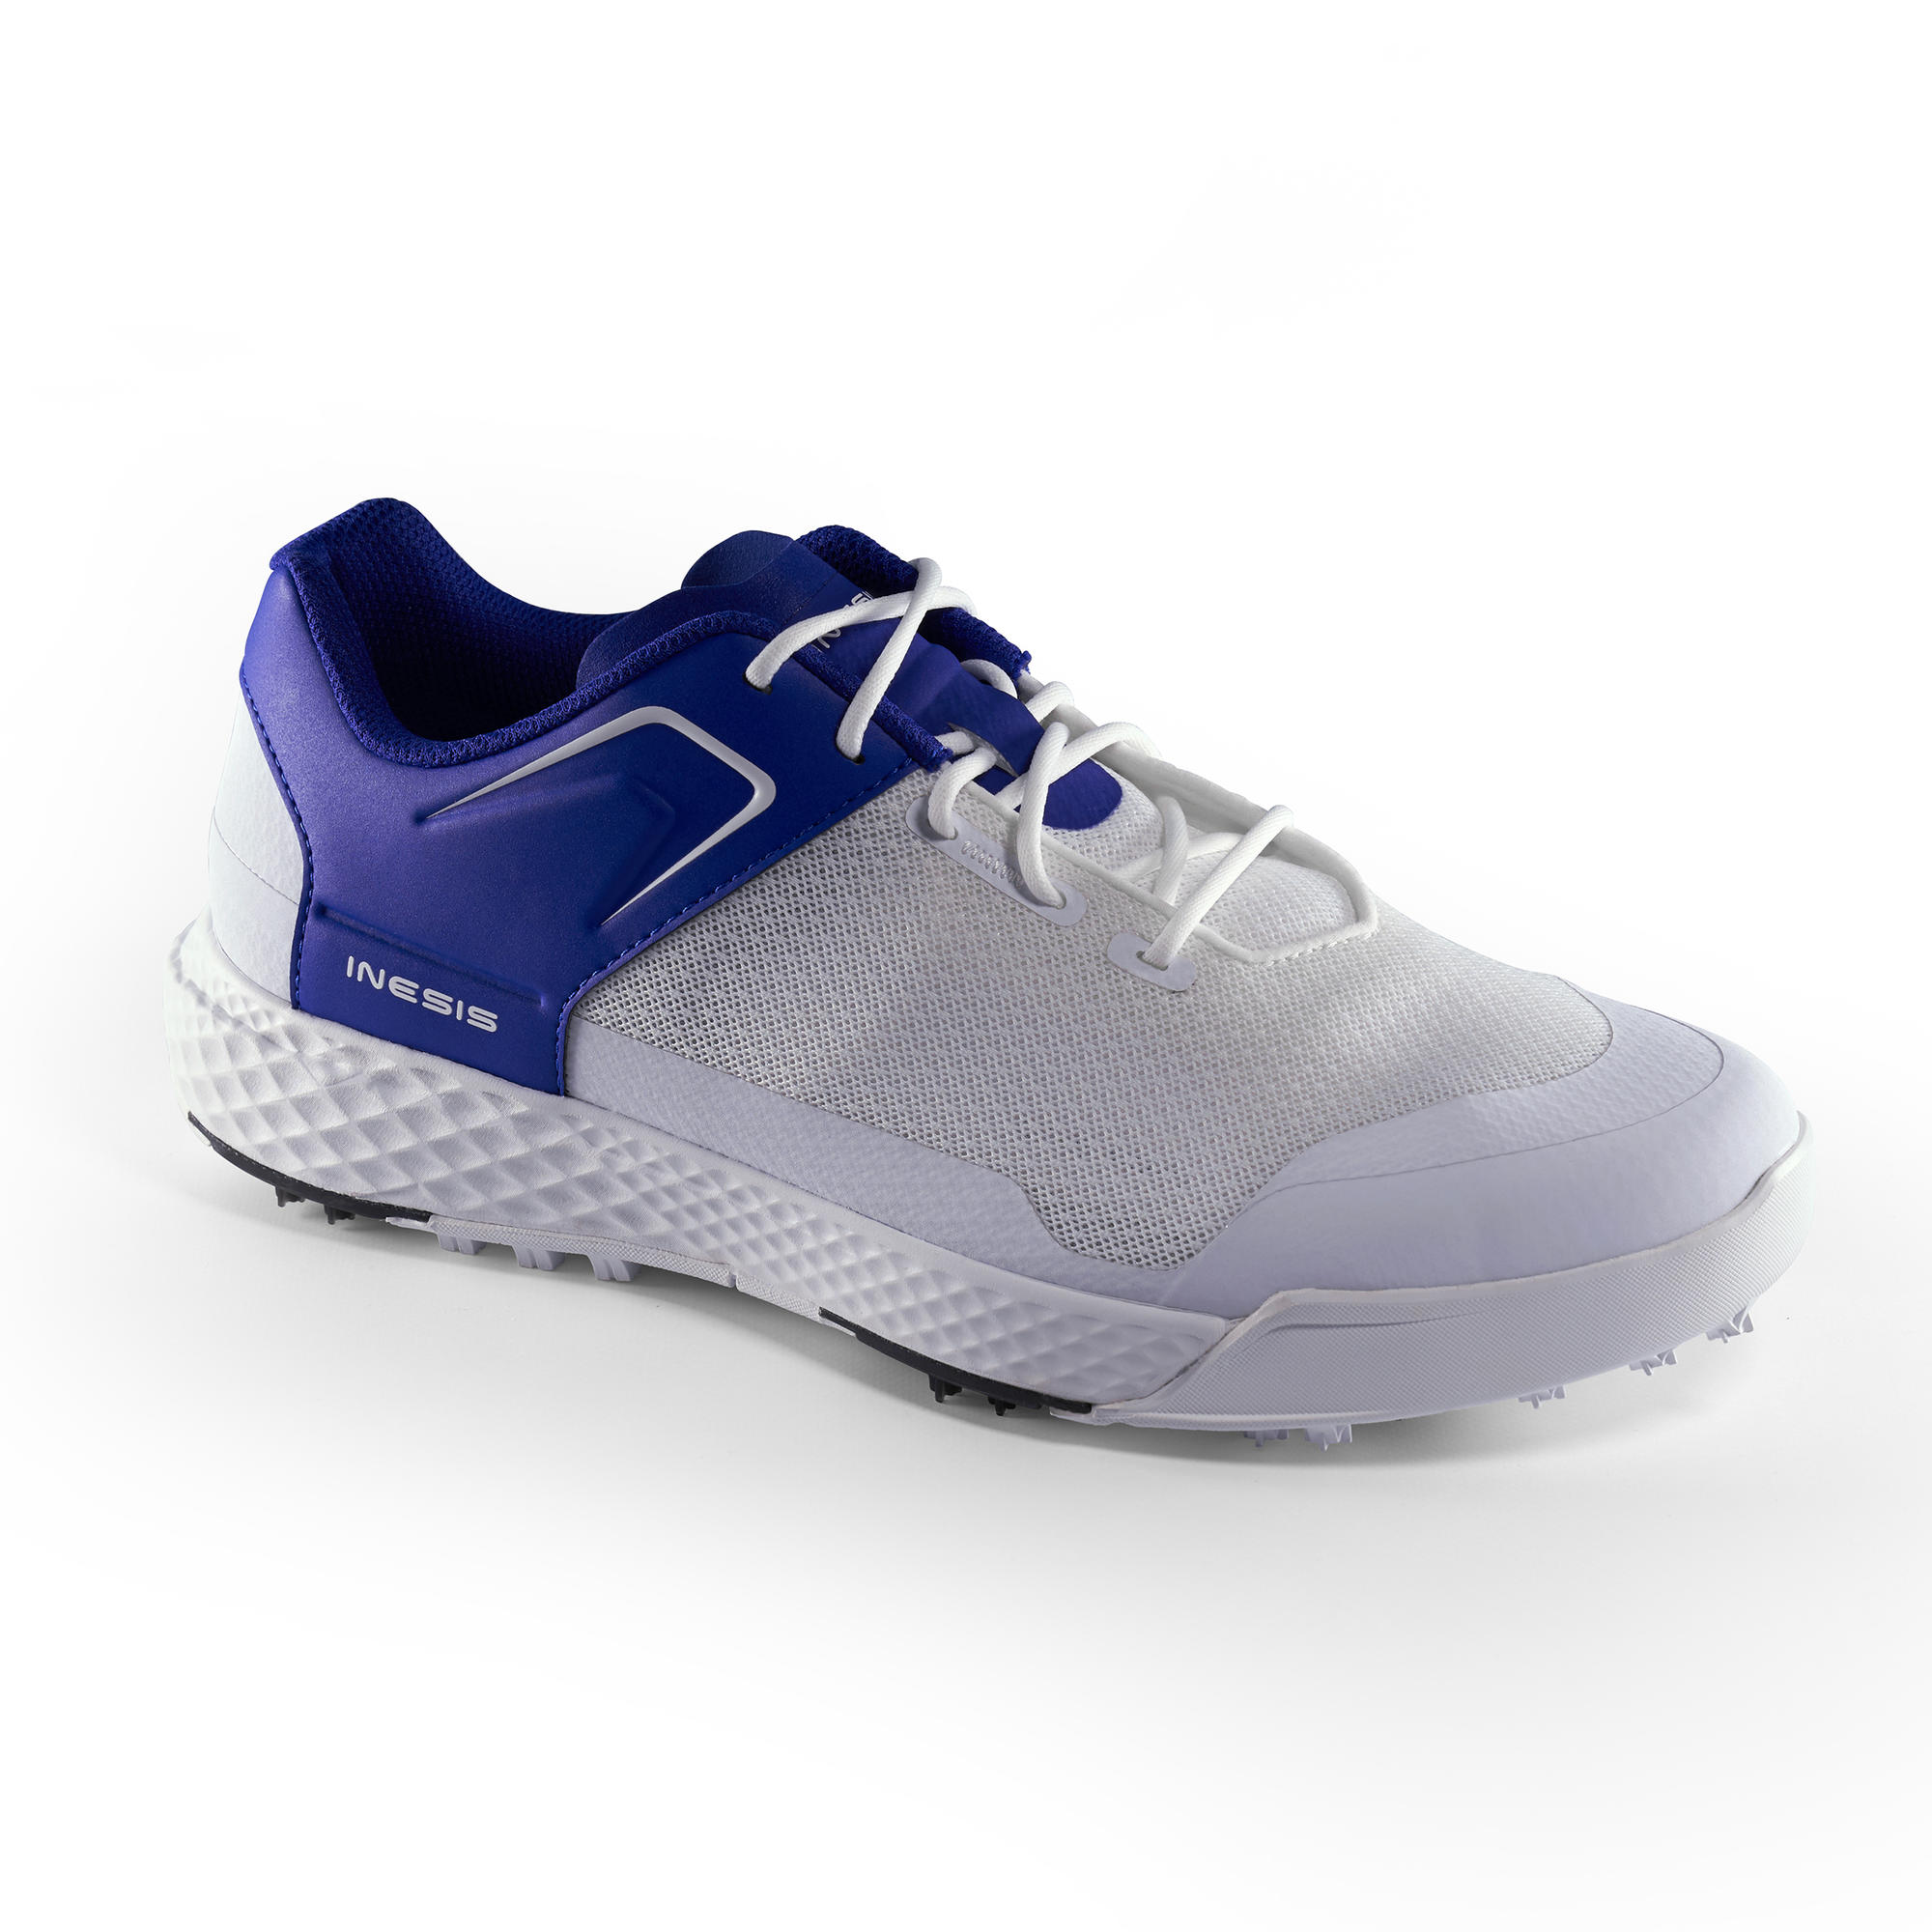 GOLF SHOES WHITE AND BLUE | Inesis Golf